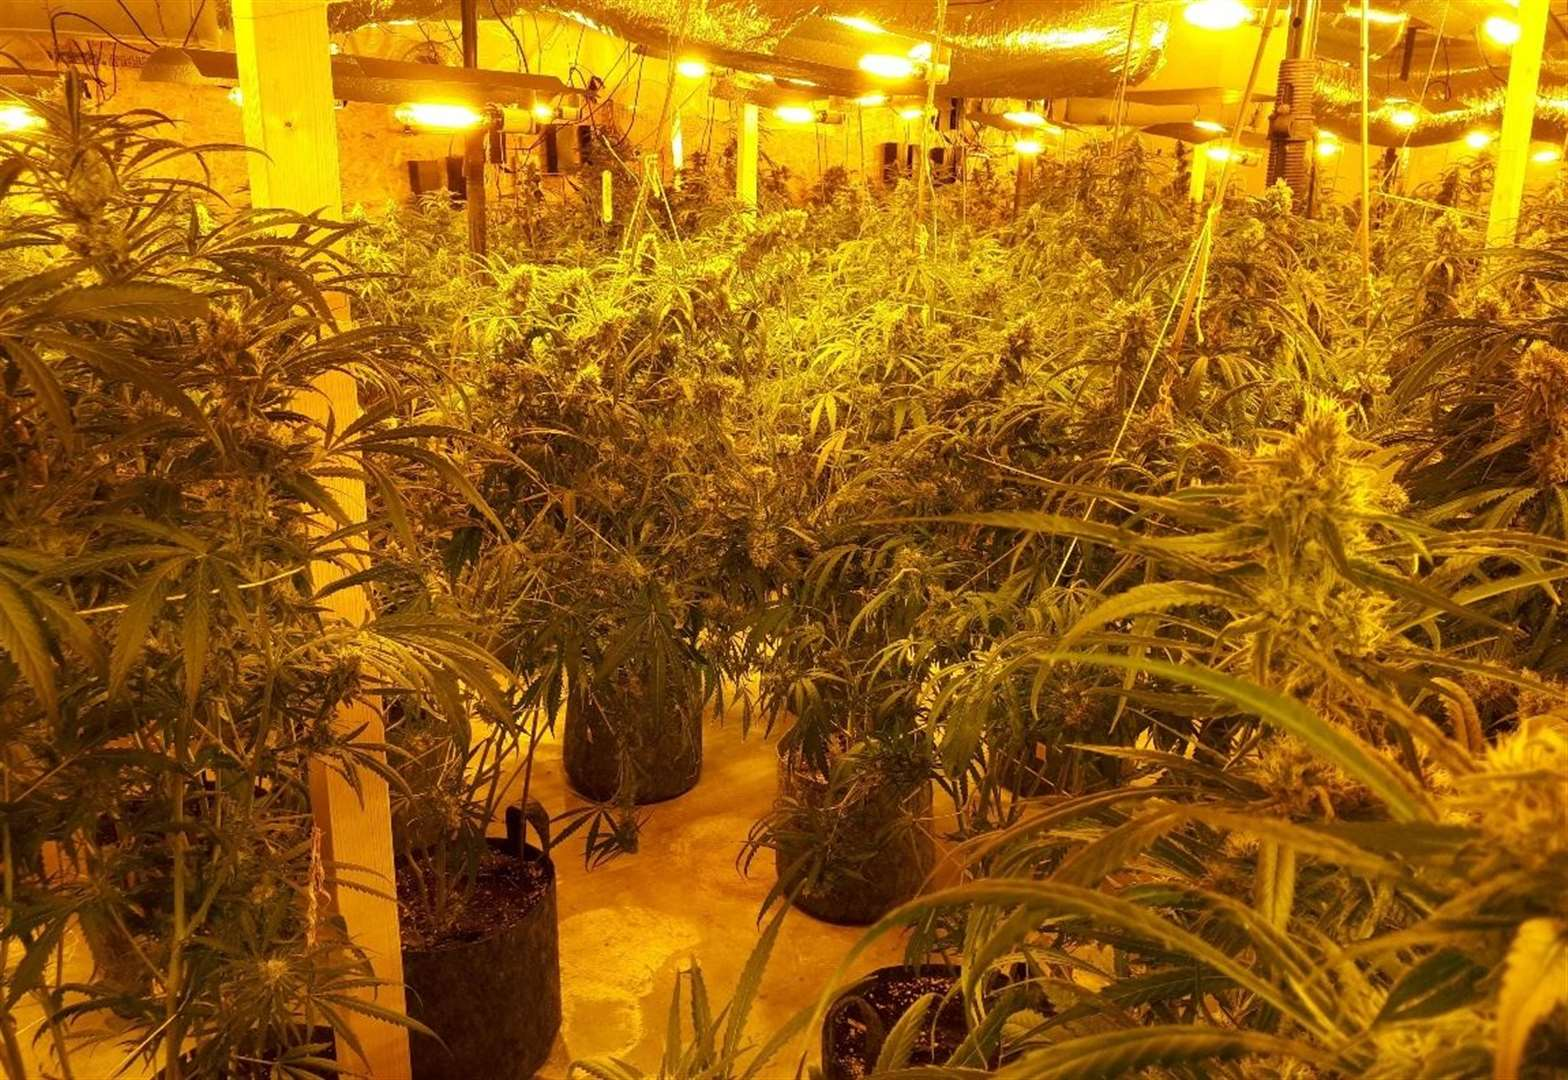 Two arrested after £1m cannabis factory found in Redgrave